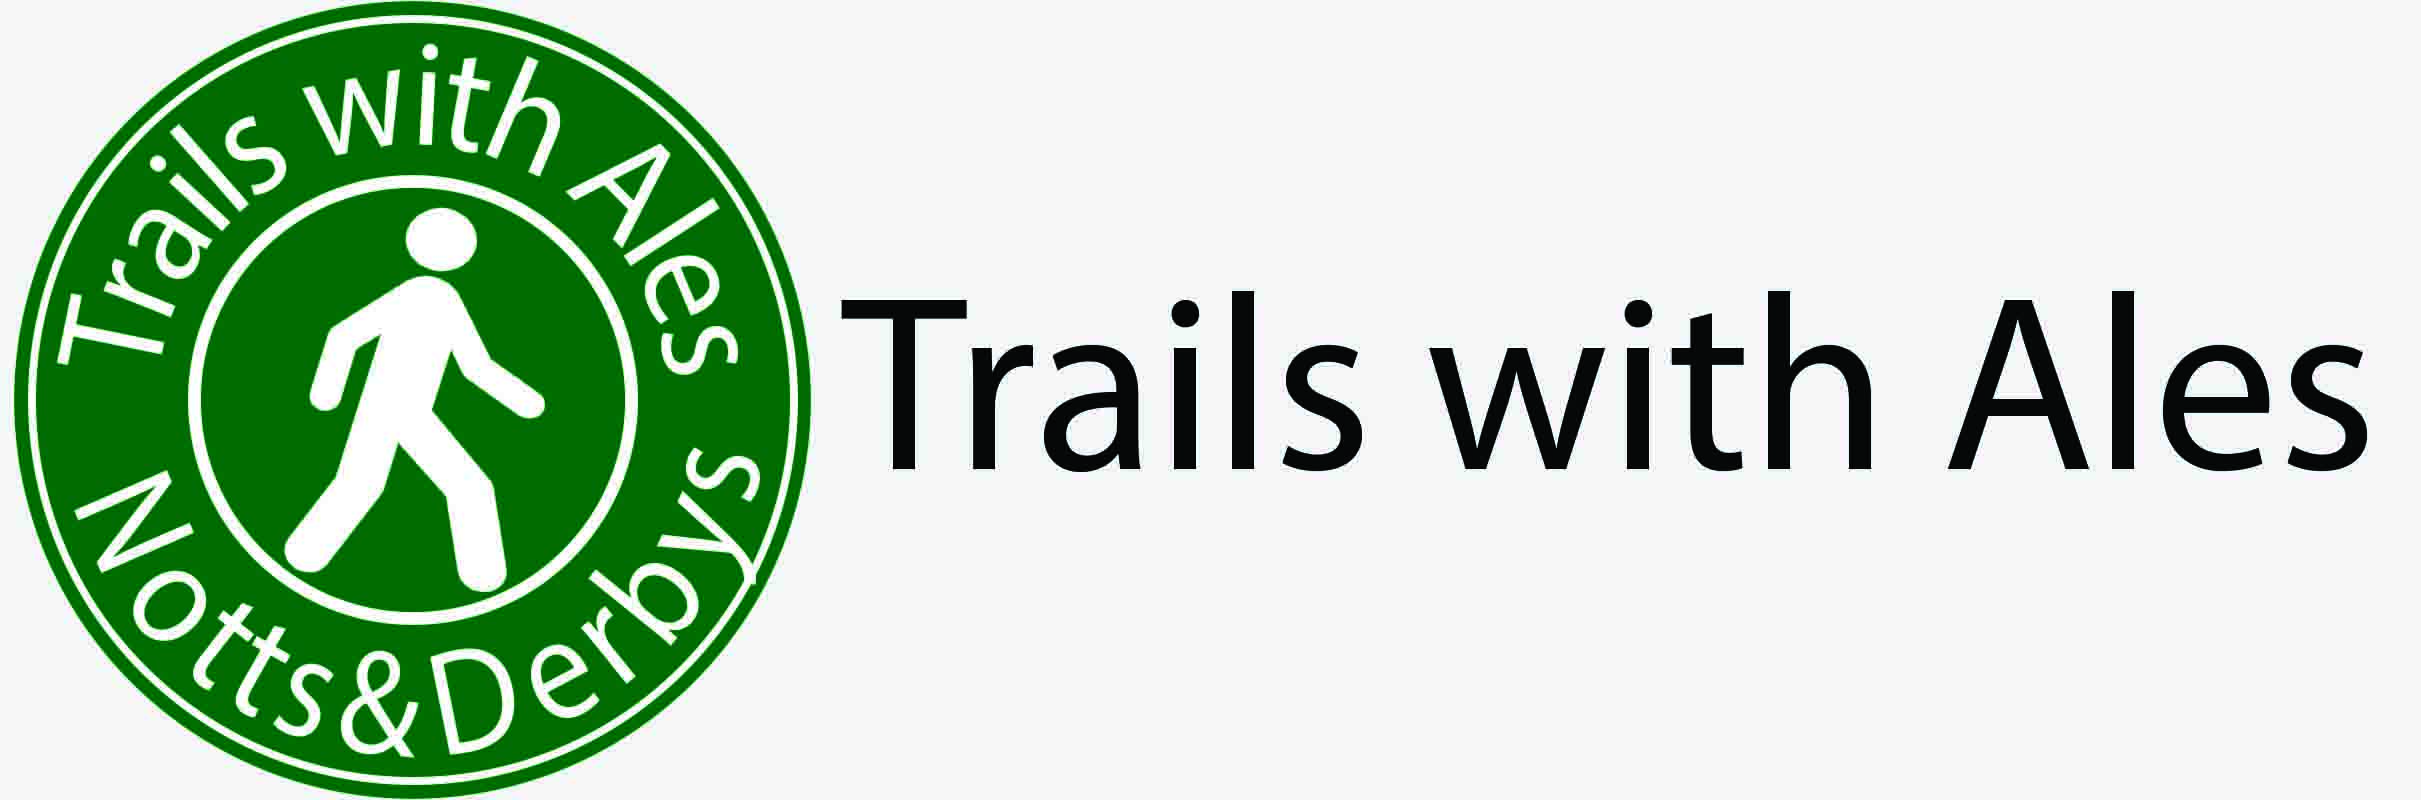 Trails with Ales